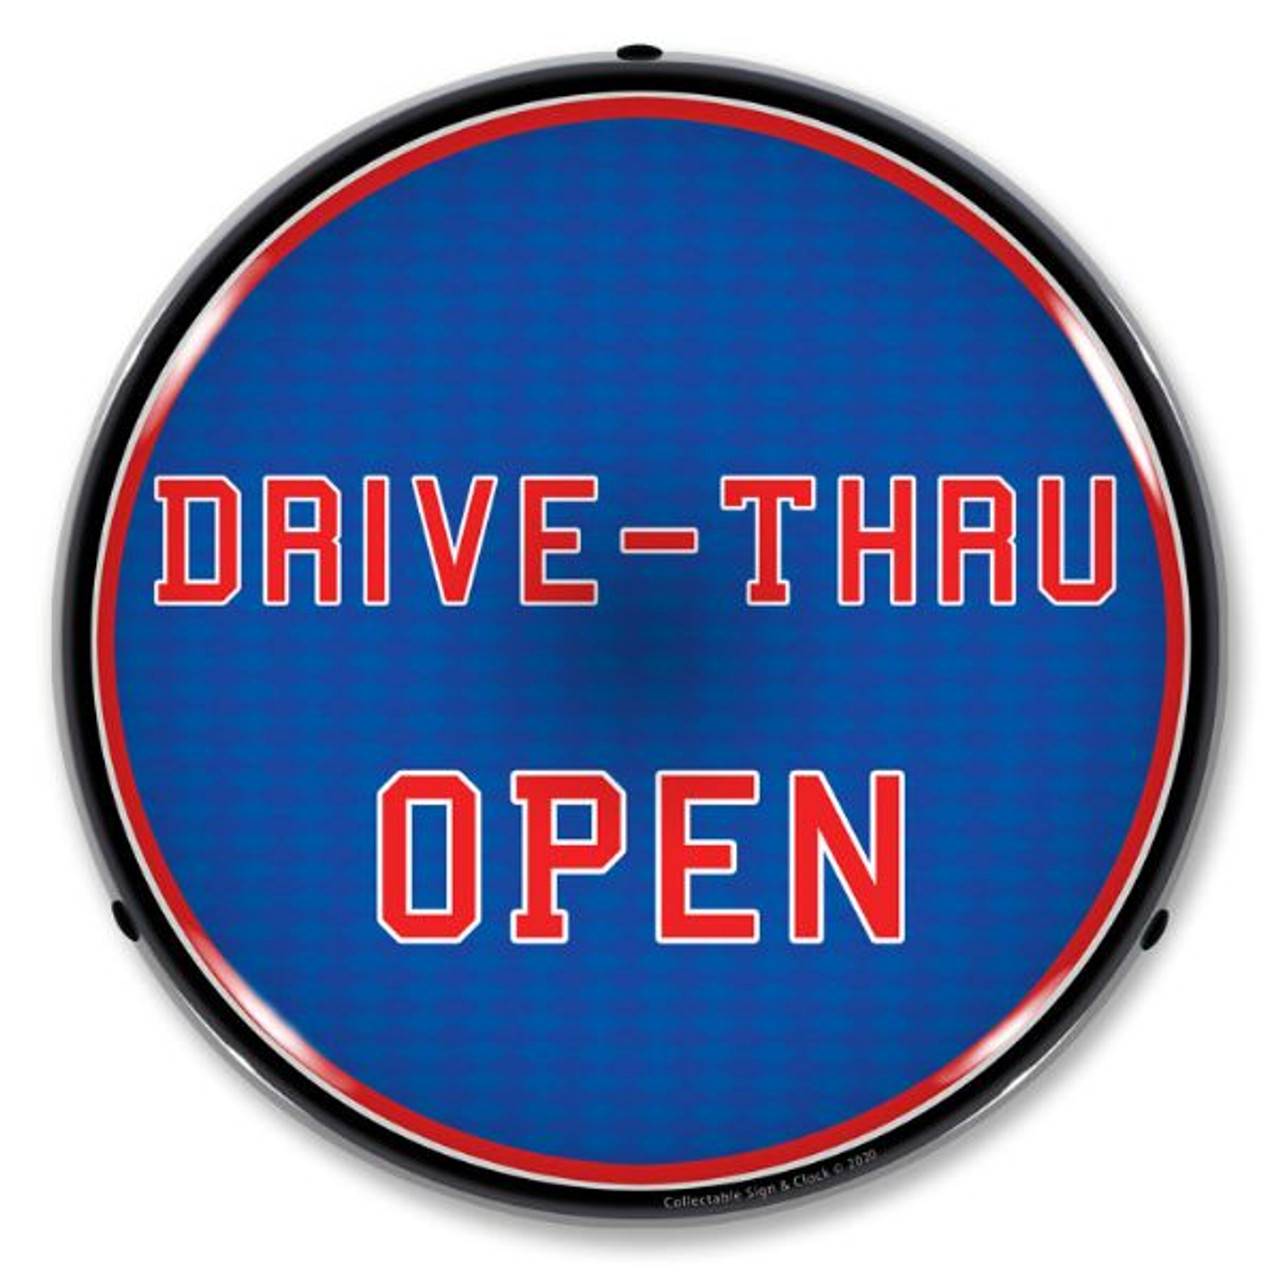 Drive-Thru Open LED Lighted Business Sign 14 x 14 Inches